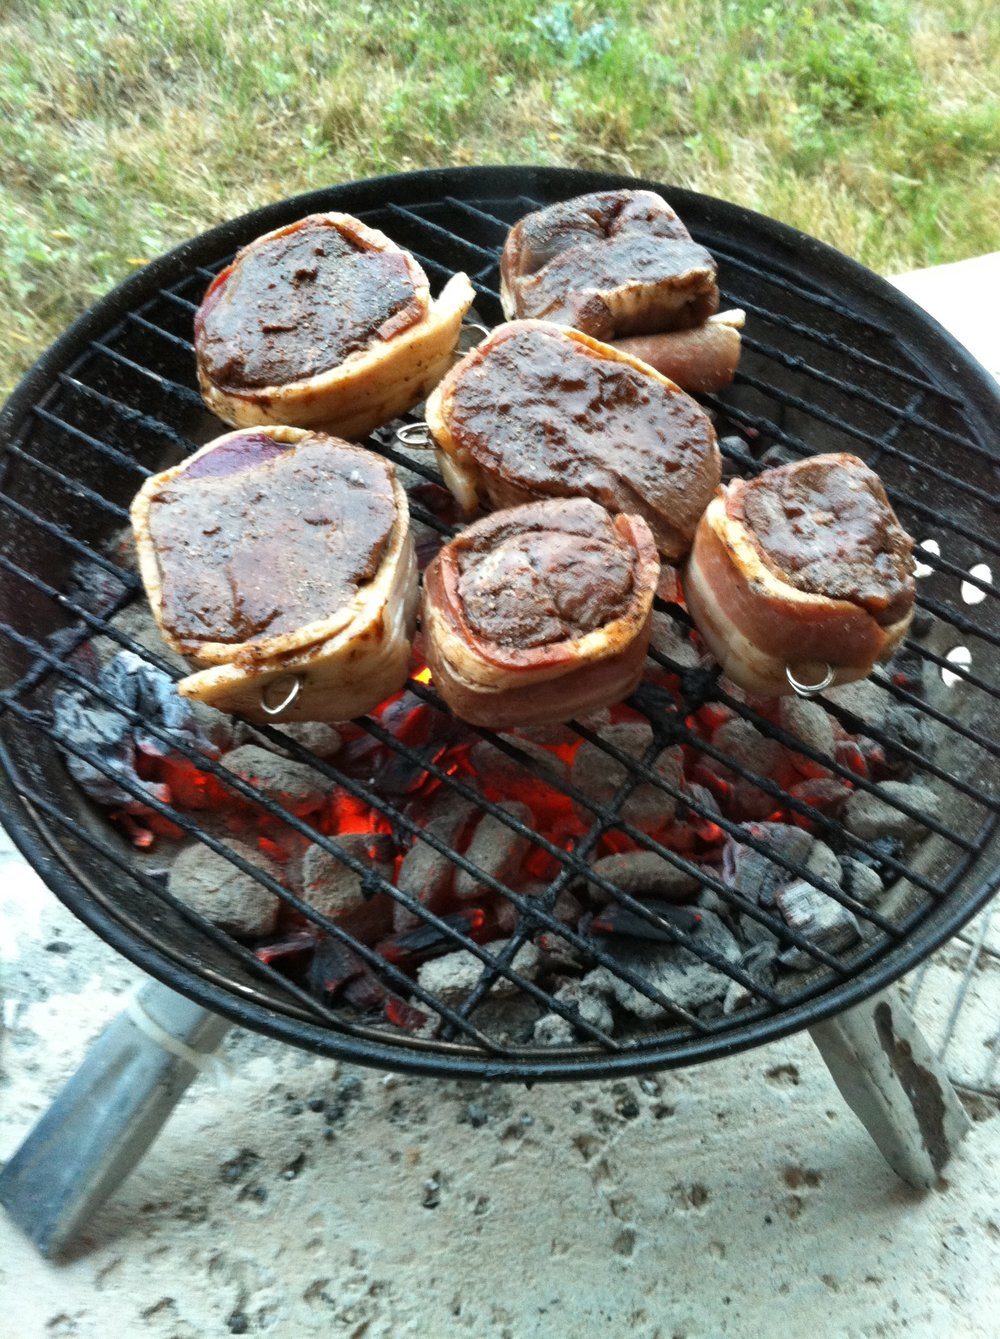 BaconWrapped-1.jpg